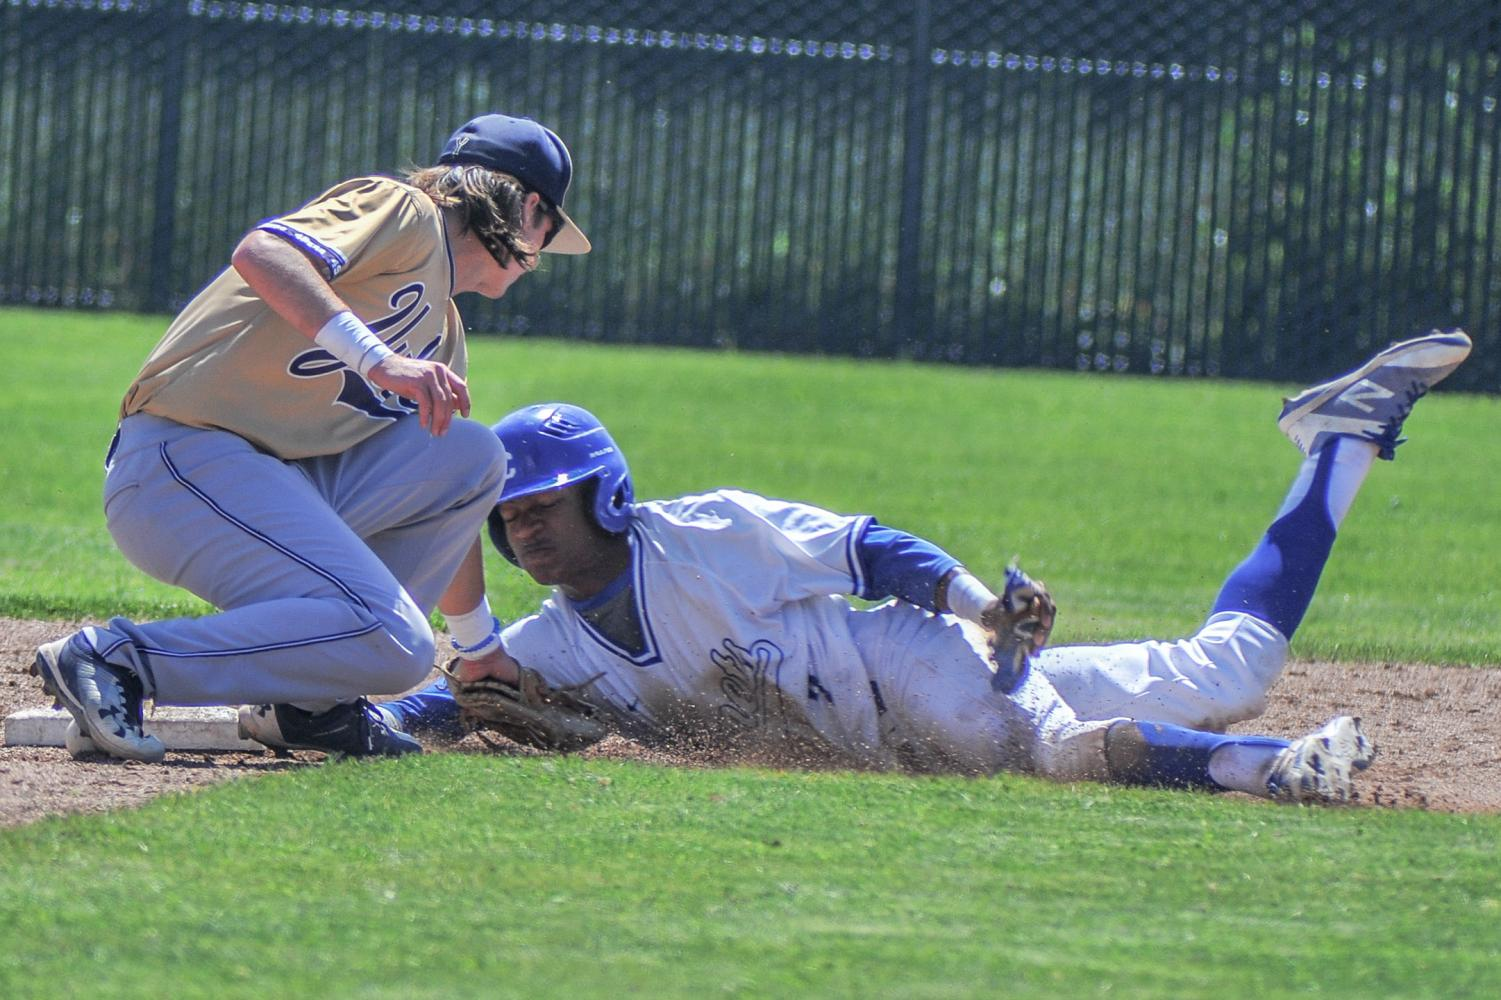 A Comet player slides safely into second base during Contra Costa College's 8-2 win against Yuba College on April 14 on the Comet Baseball Field.